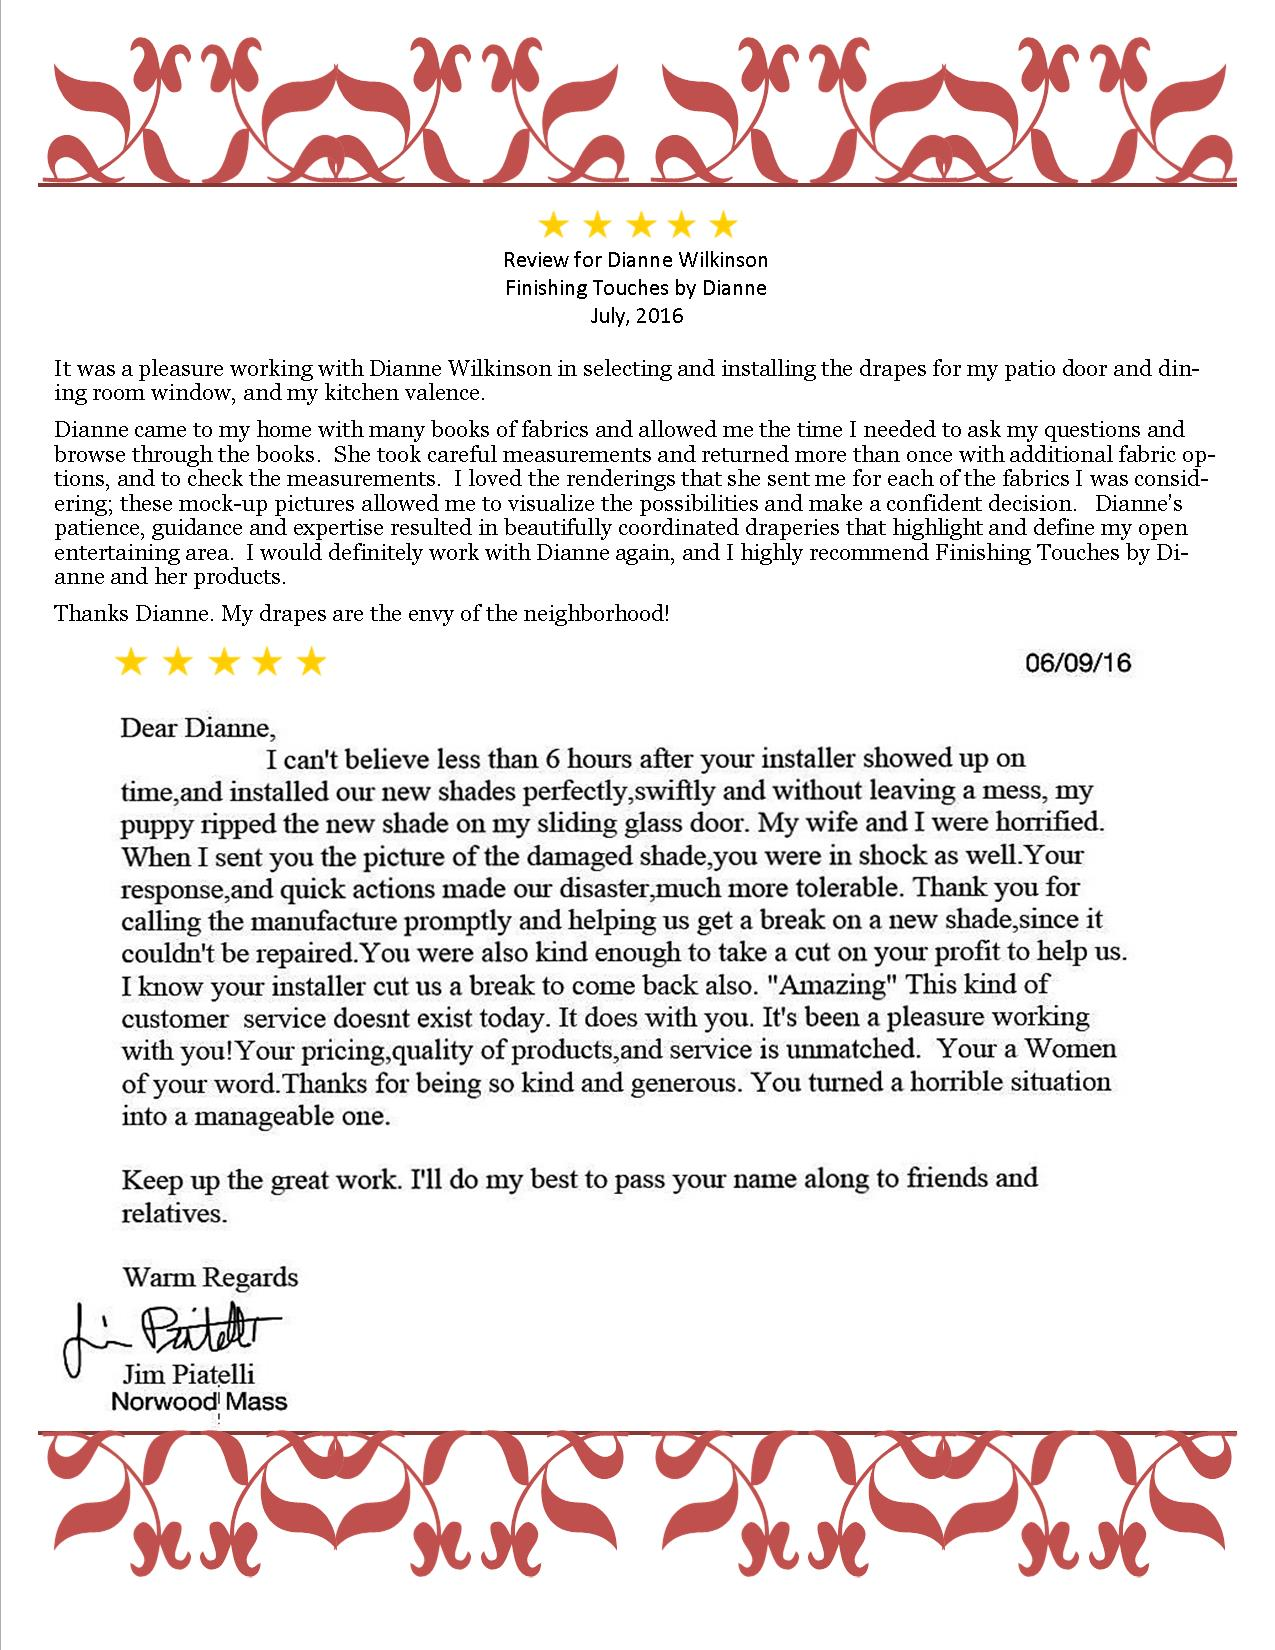 Hand written review letters-Norwood and Worcester 2016